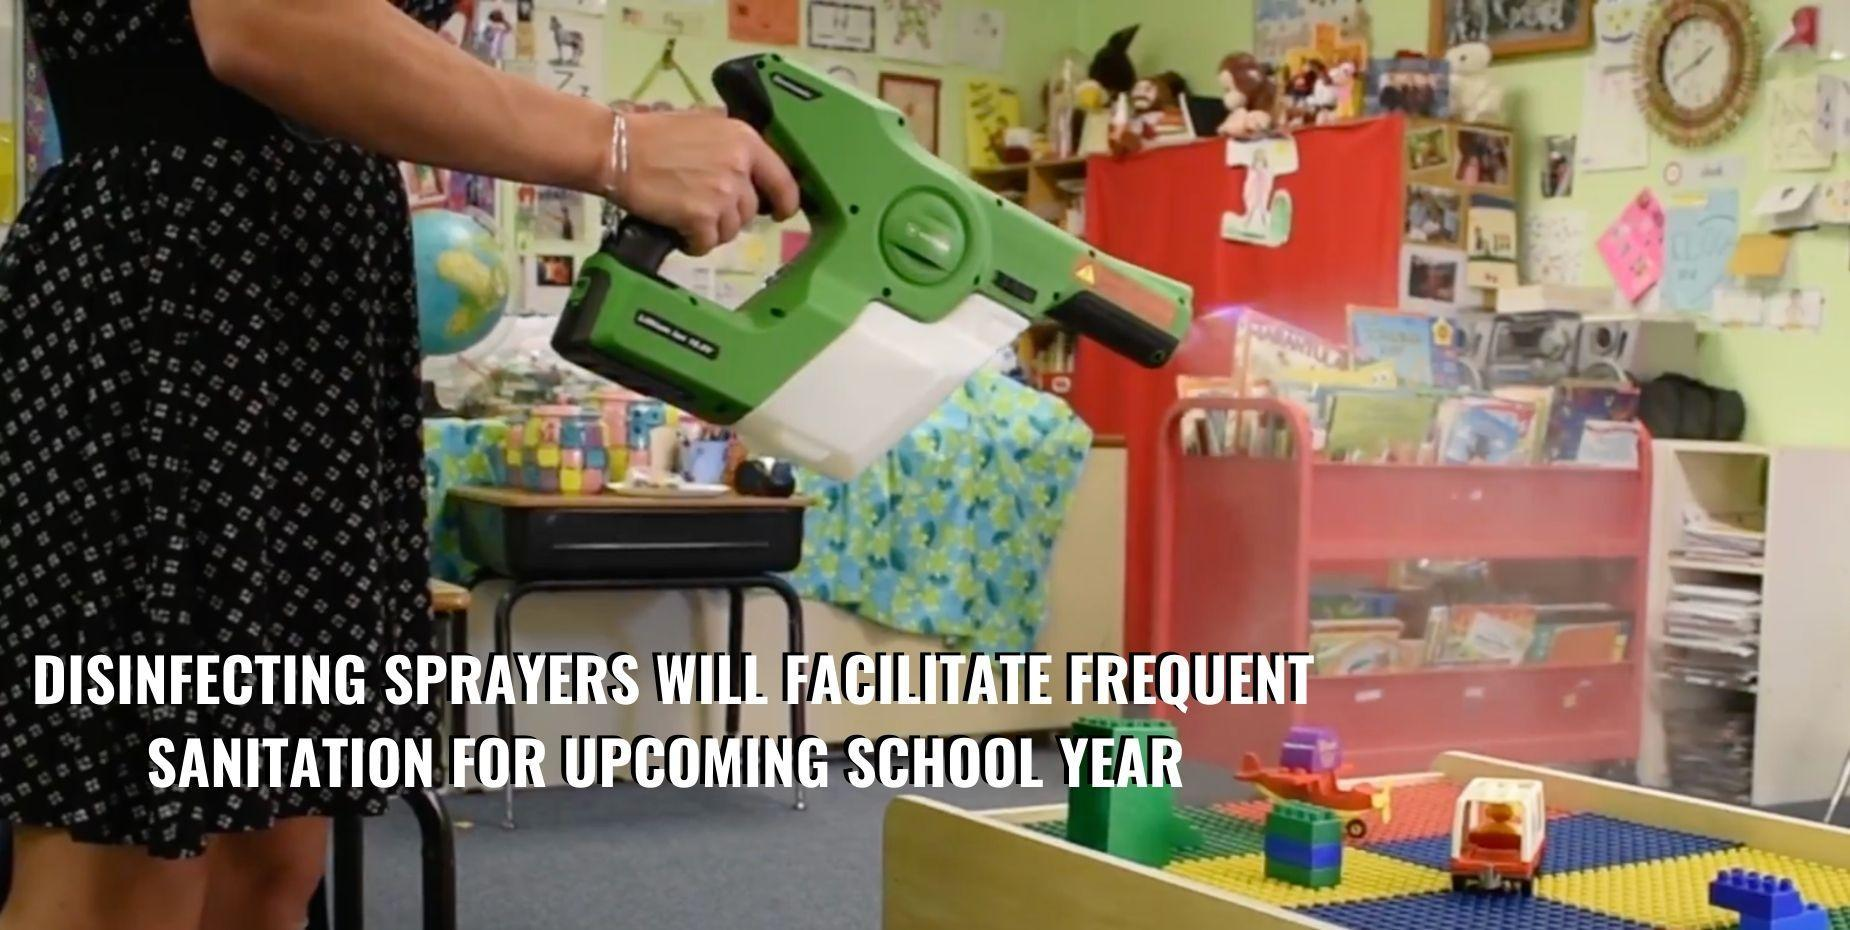 Disinfecting sprayers will facilitate frequent sanitation for upcoming school year